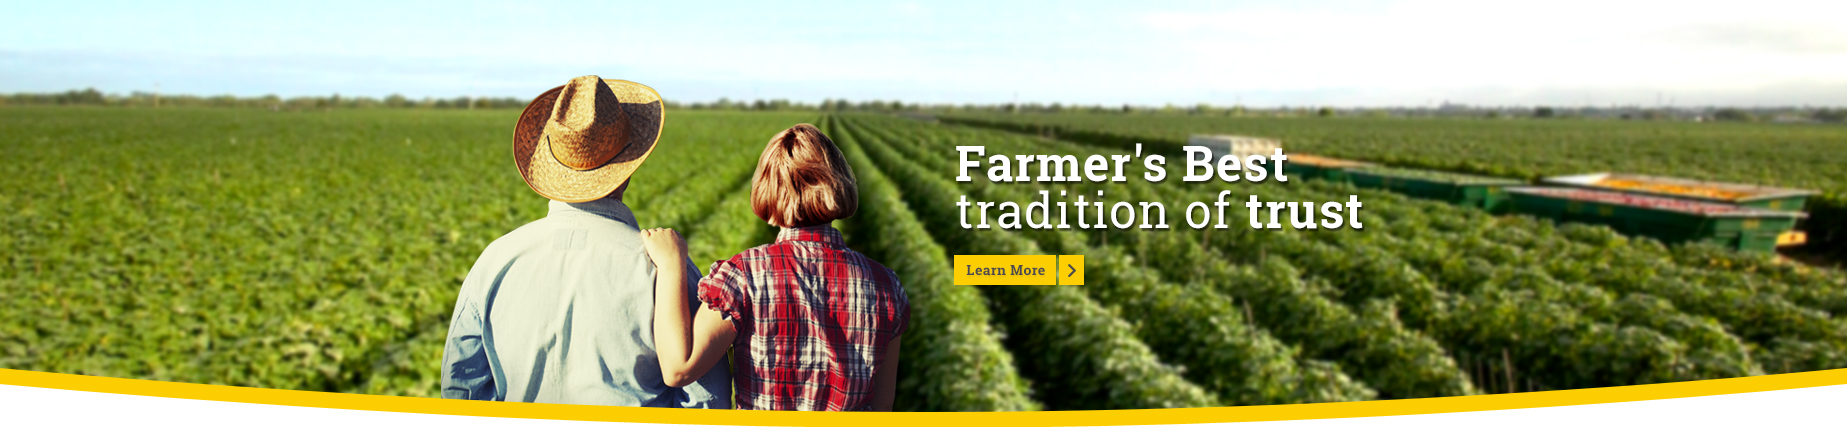 Farmer's Best Tradition of Trust